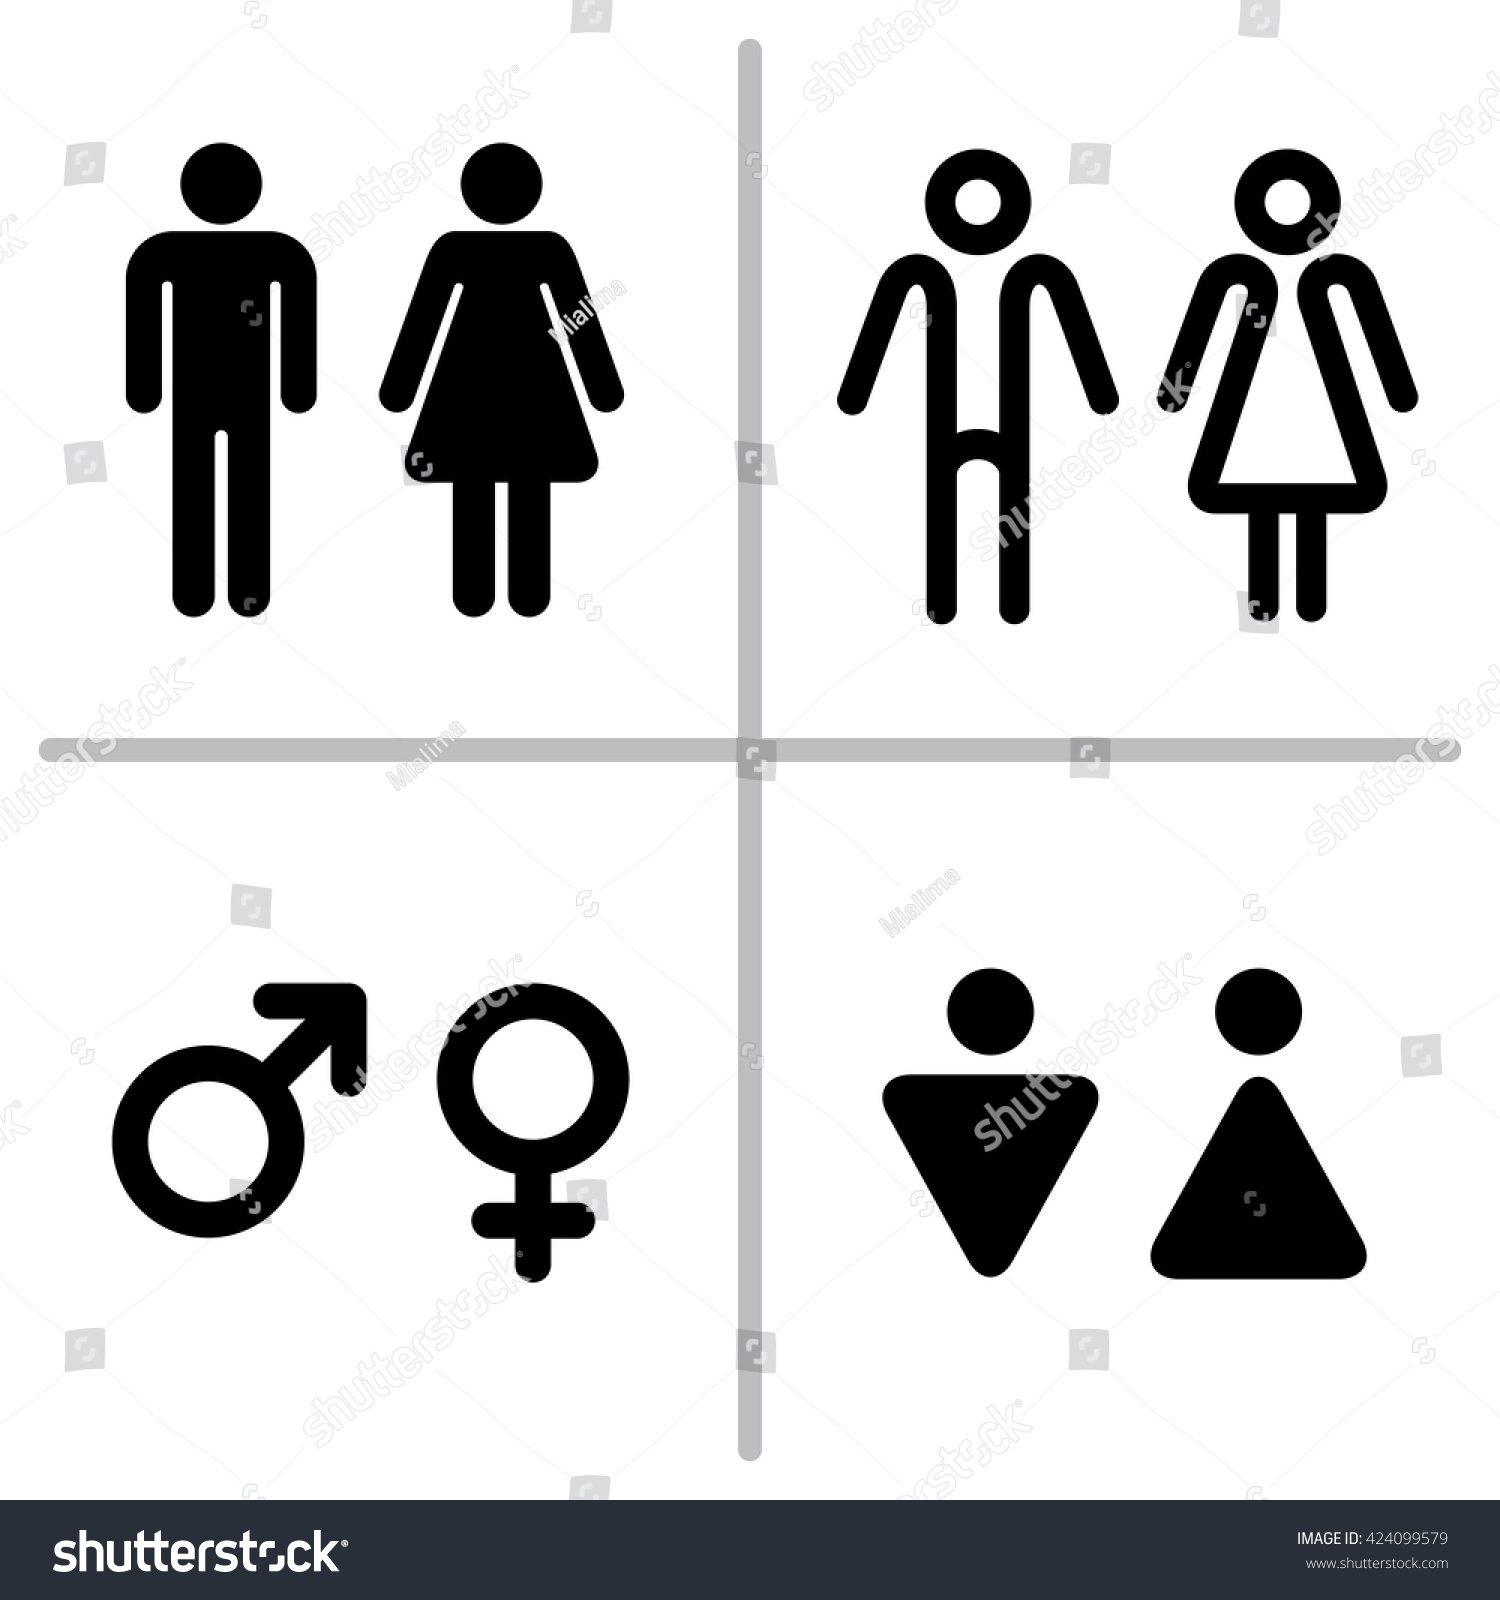 Vector Set Of WC Icons Isolated On A White Background Washroom Icon Restroom Sign